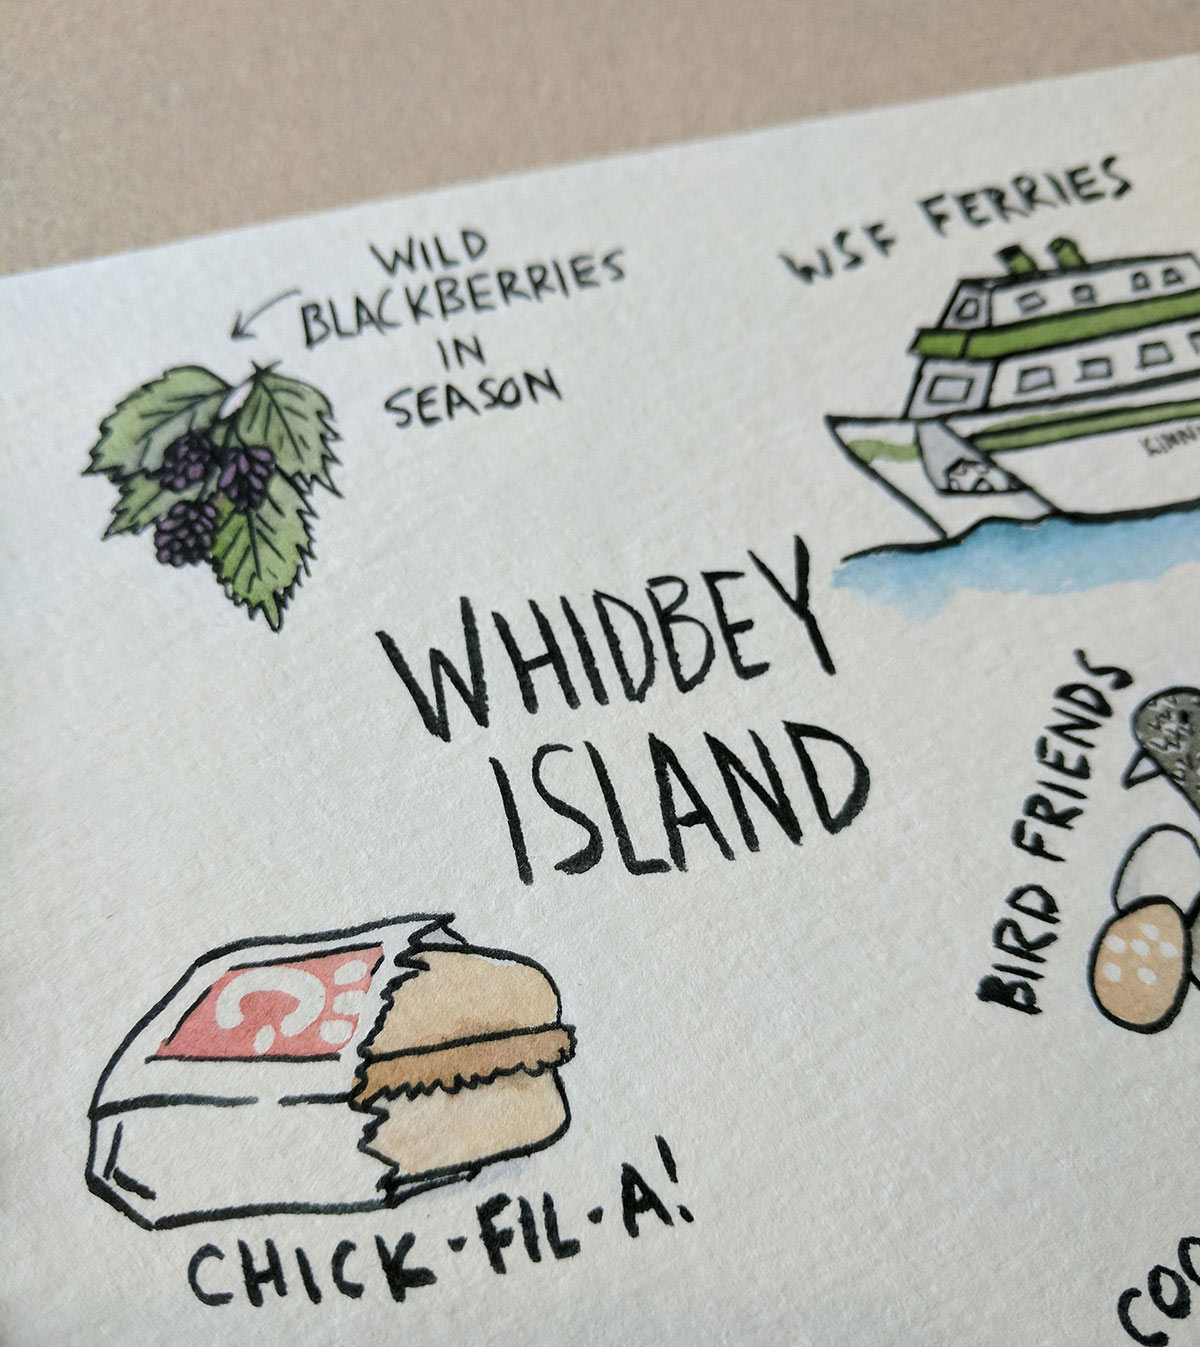 Whidbey doesn't have a Chick-Fil-A, but grabbing some chicken as we head north from Seattle is always a part of this trip.